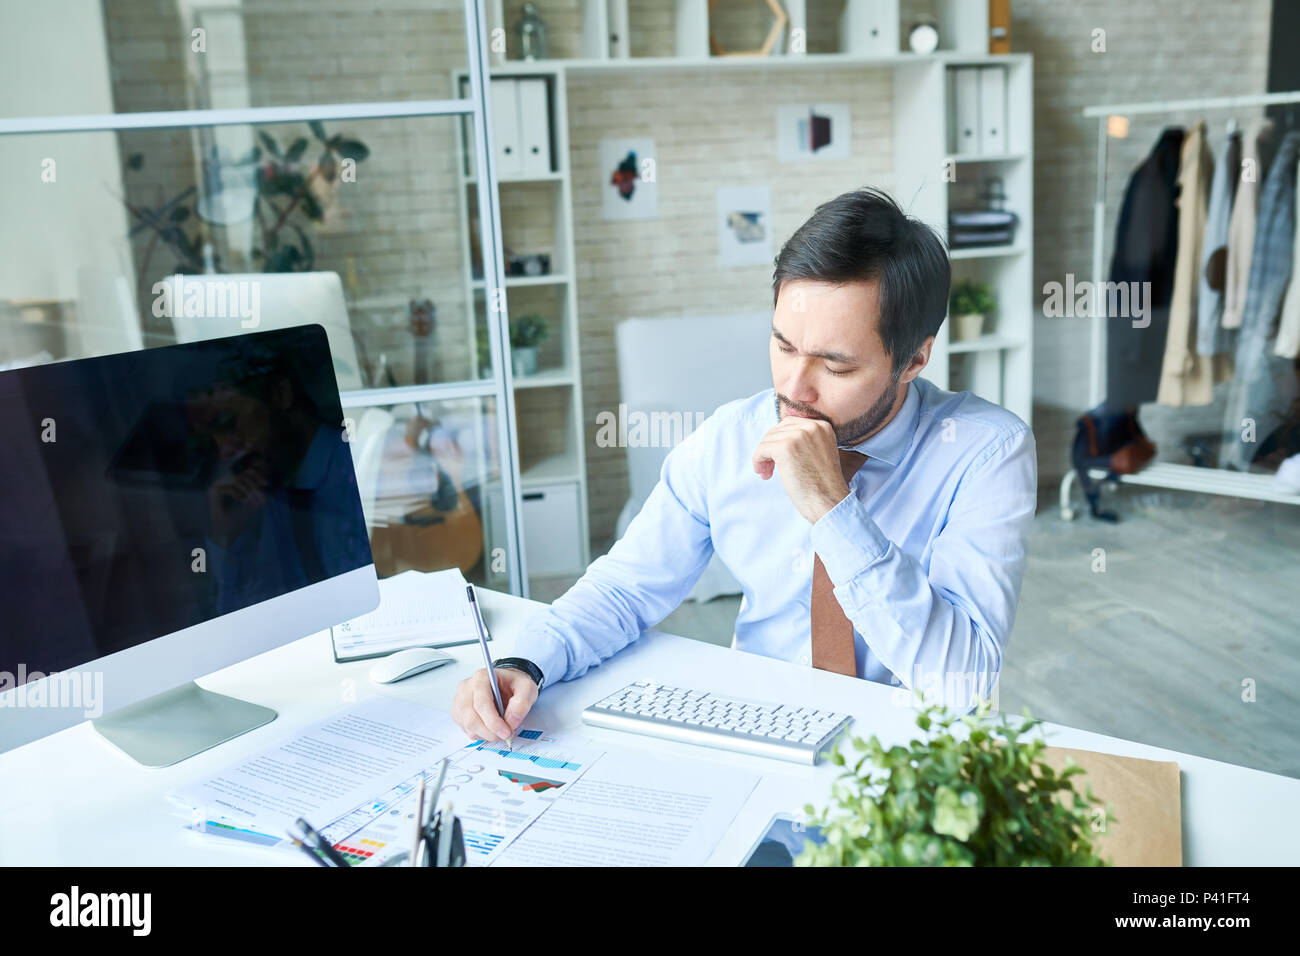 Thoughtful man working in office - Stock Image